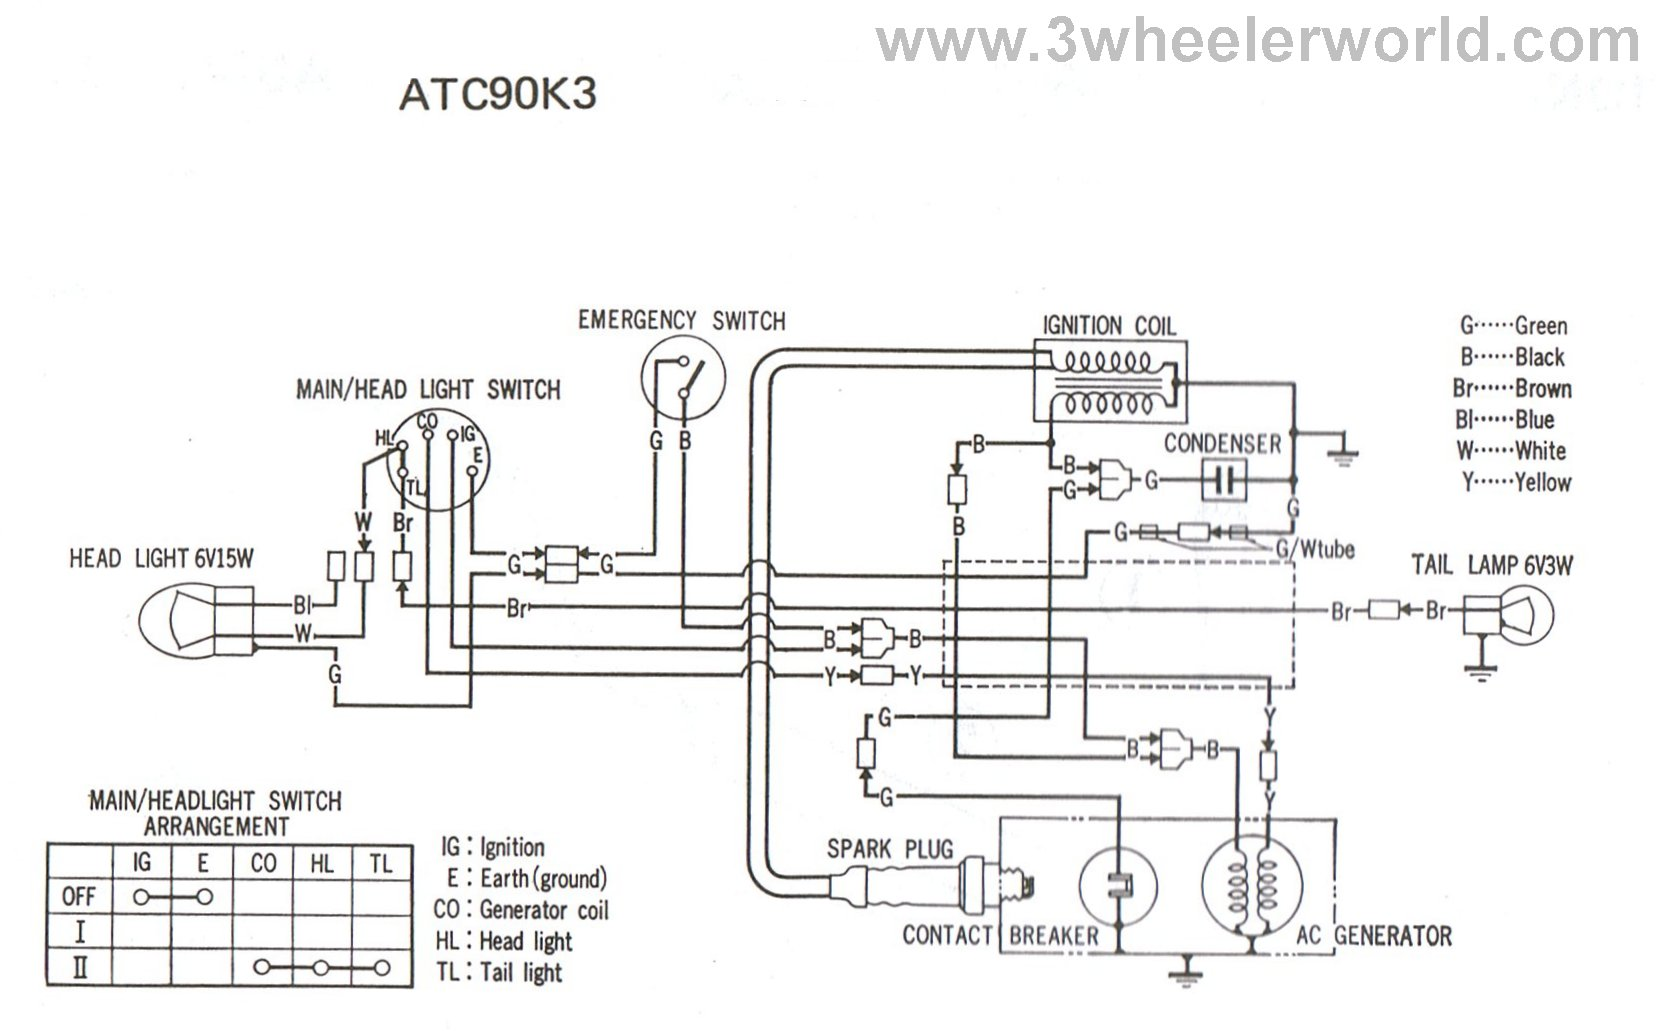 ATC90K3HM polaris predator 90 wiring diagram polaris 90 service manual 1995 polaris scrambler wiring diagram at soozxer.org